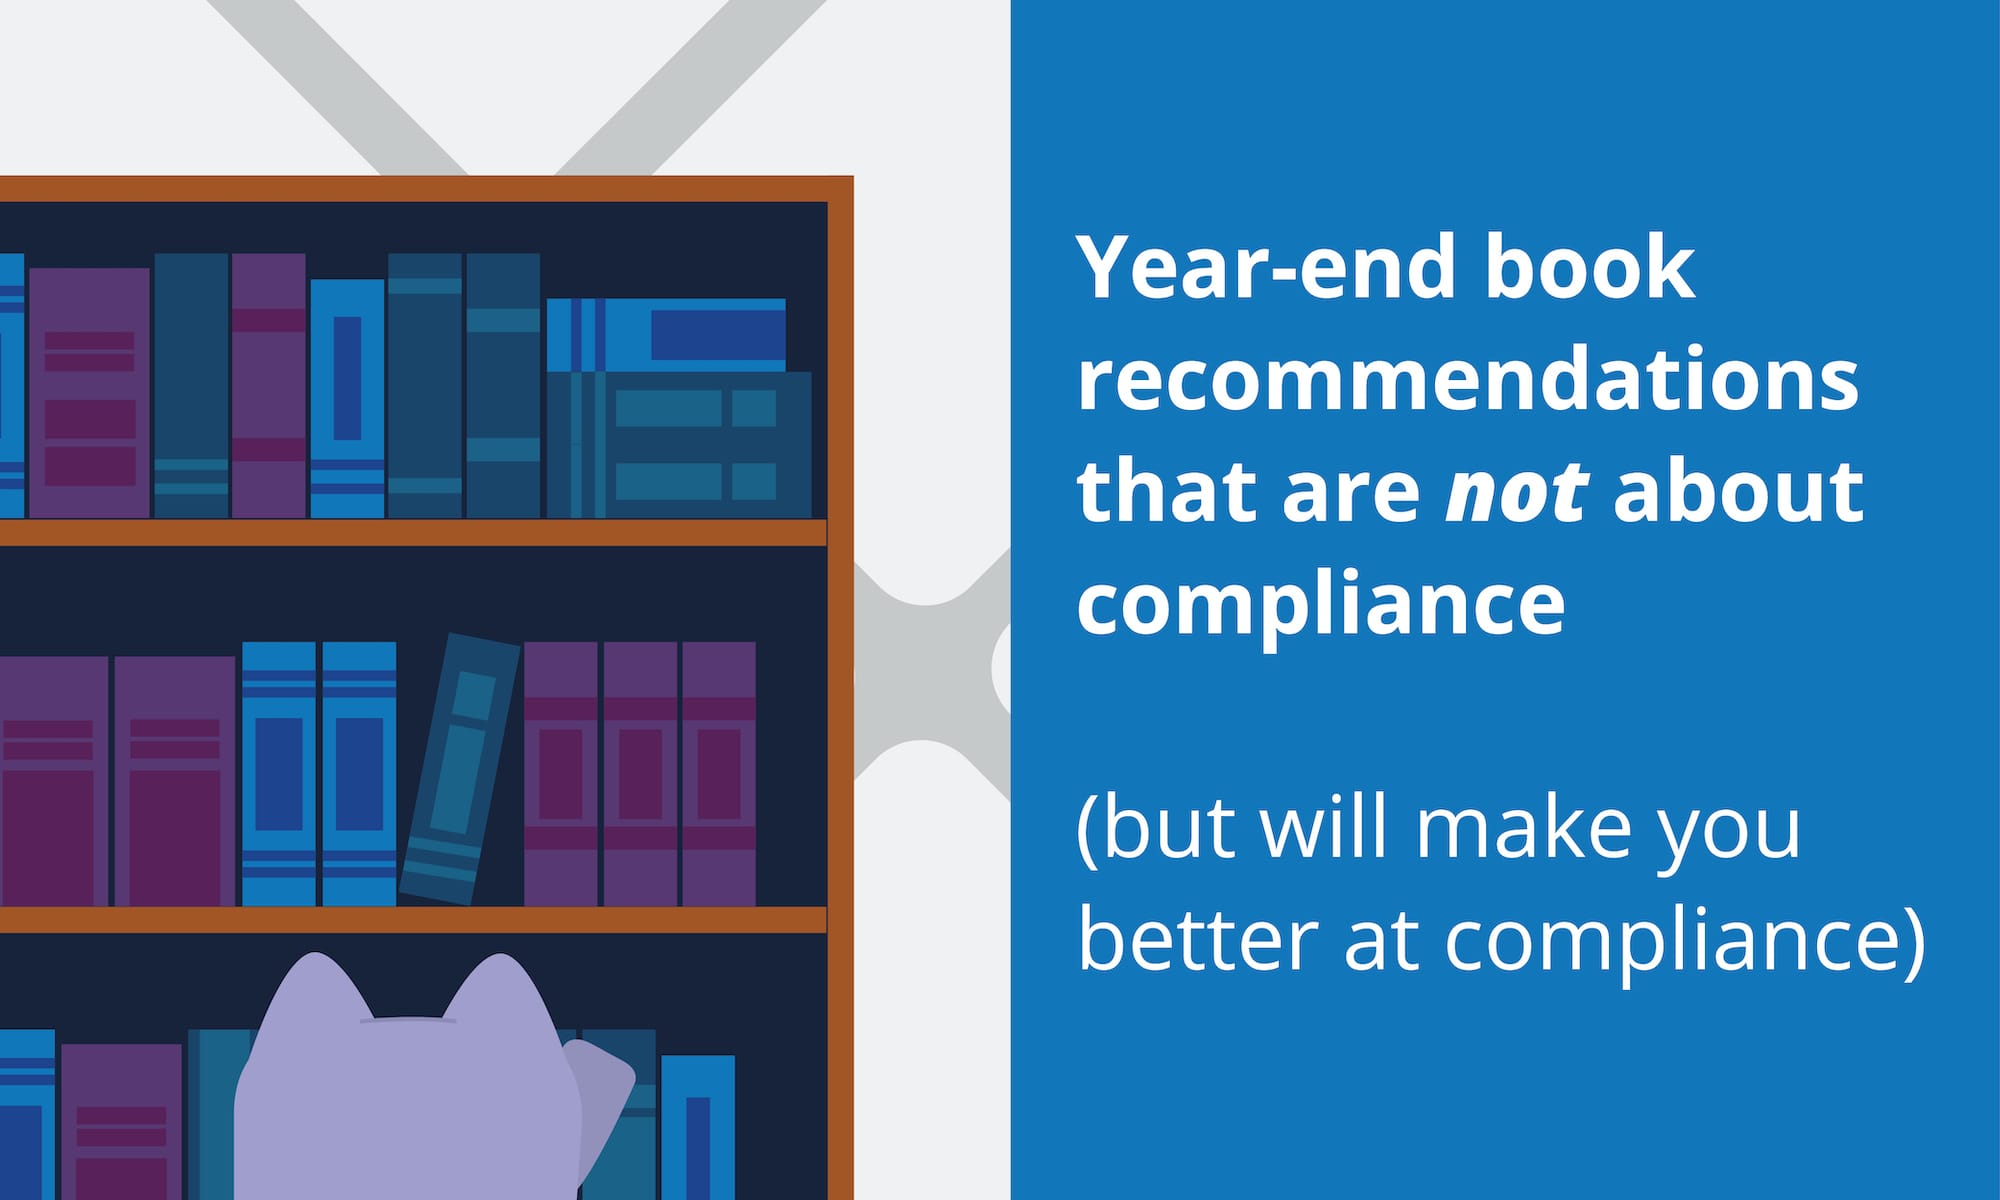 Year-end book recommendations that are not about compliance (but will make you better at compliance).